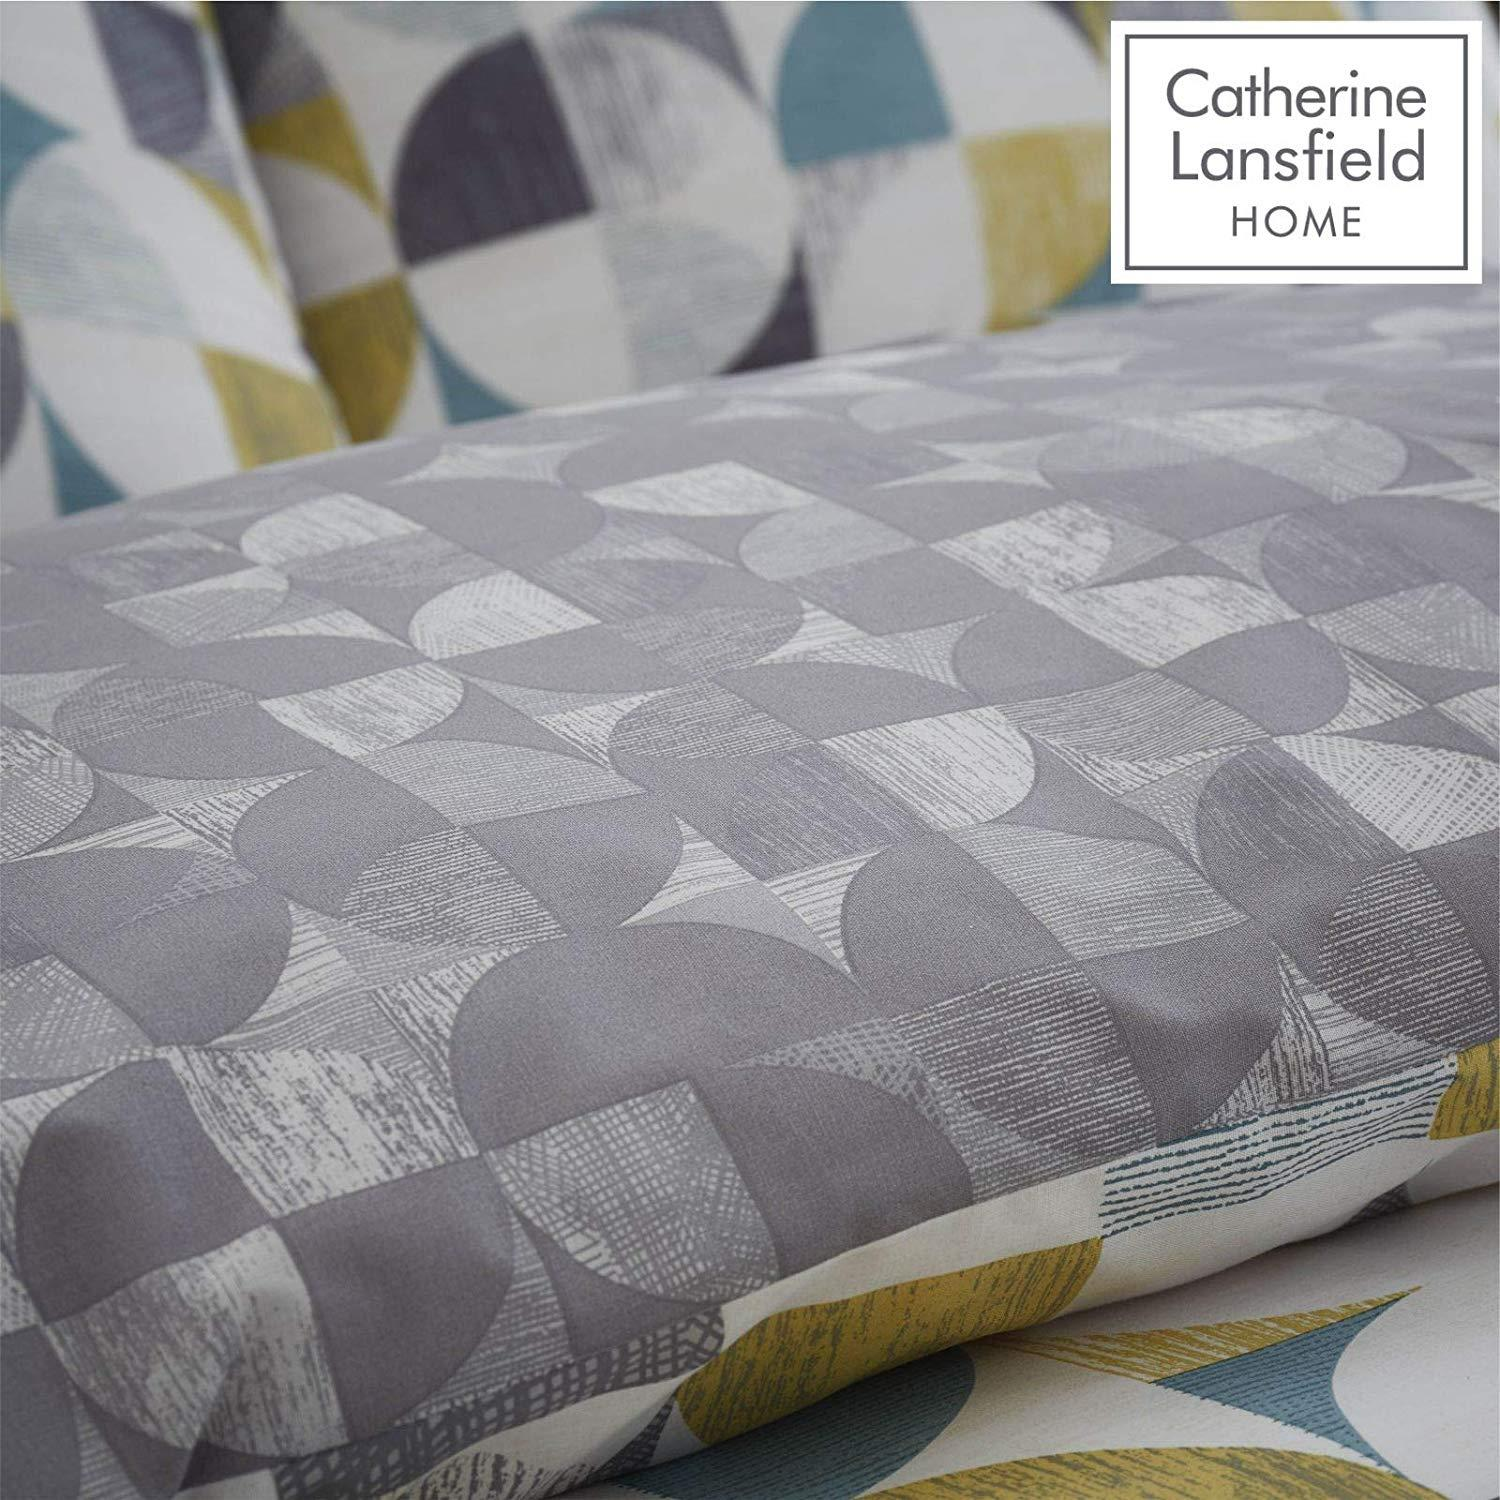 Catherine-Lansfield-Retro-Circles-Multi-Duvet-Set-Reversible-Bedding-Curtain thumbnail 4